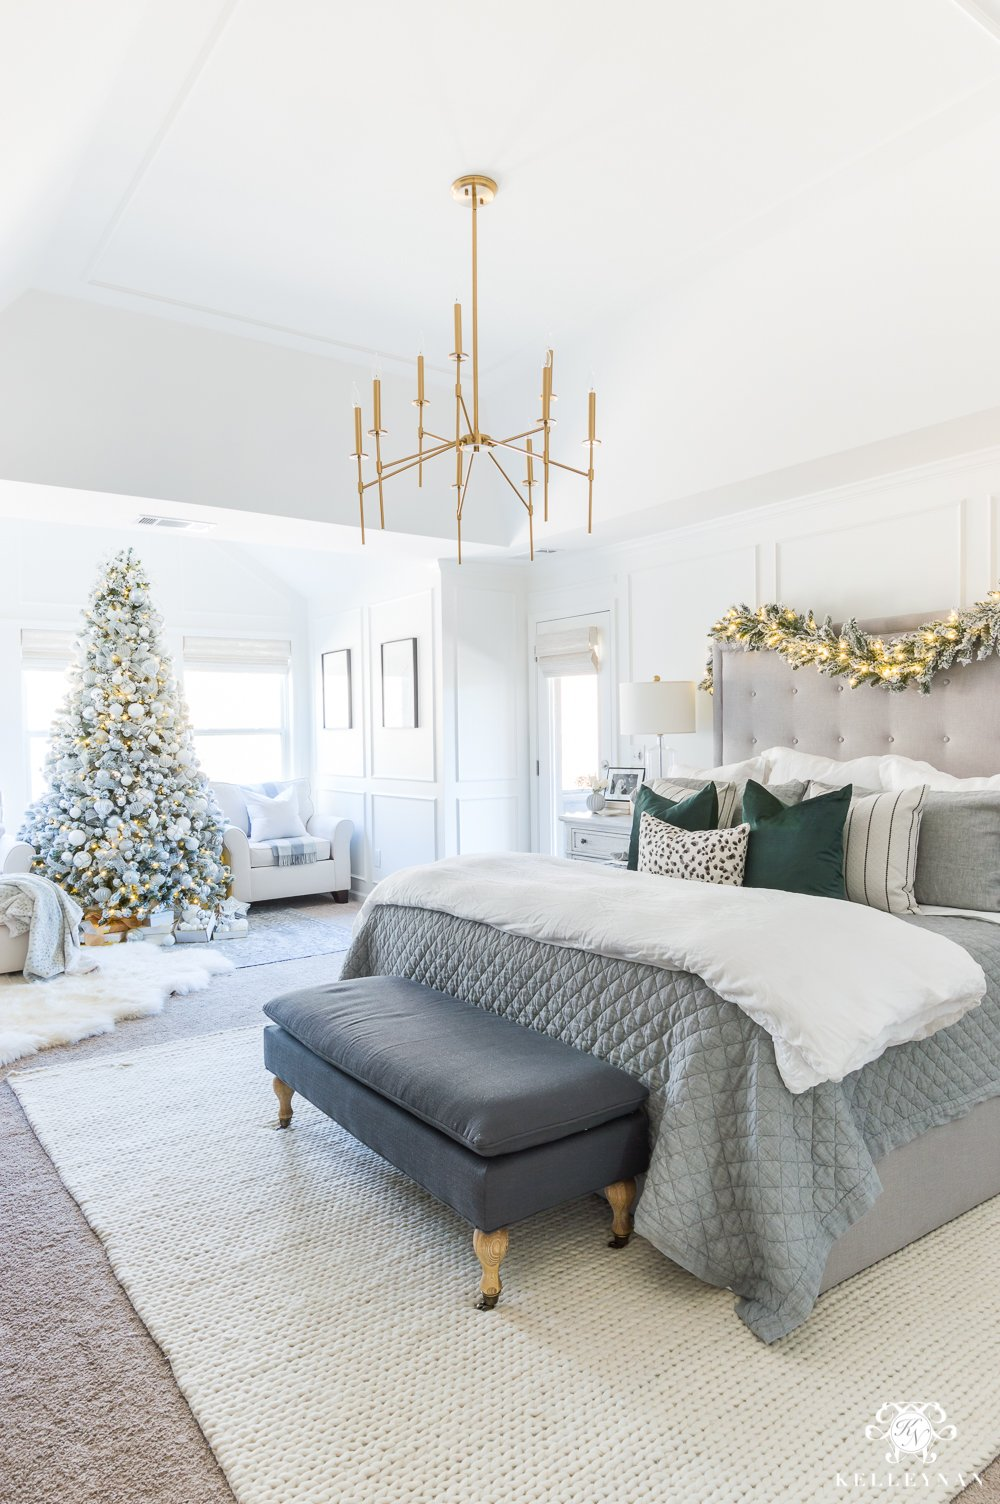 Silver-White-and-Green-Christmas-color-scheme-in-a-gray-bedroom